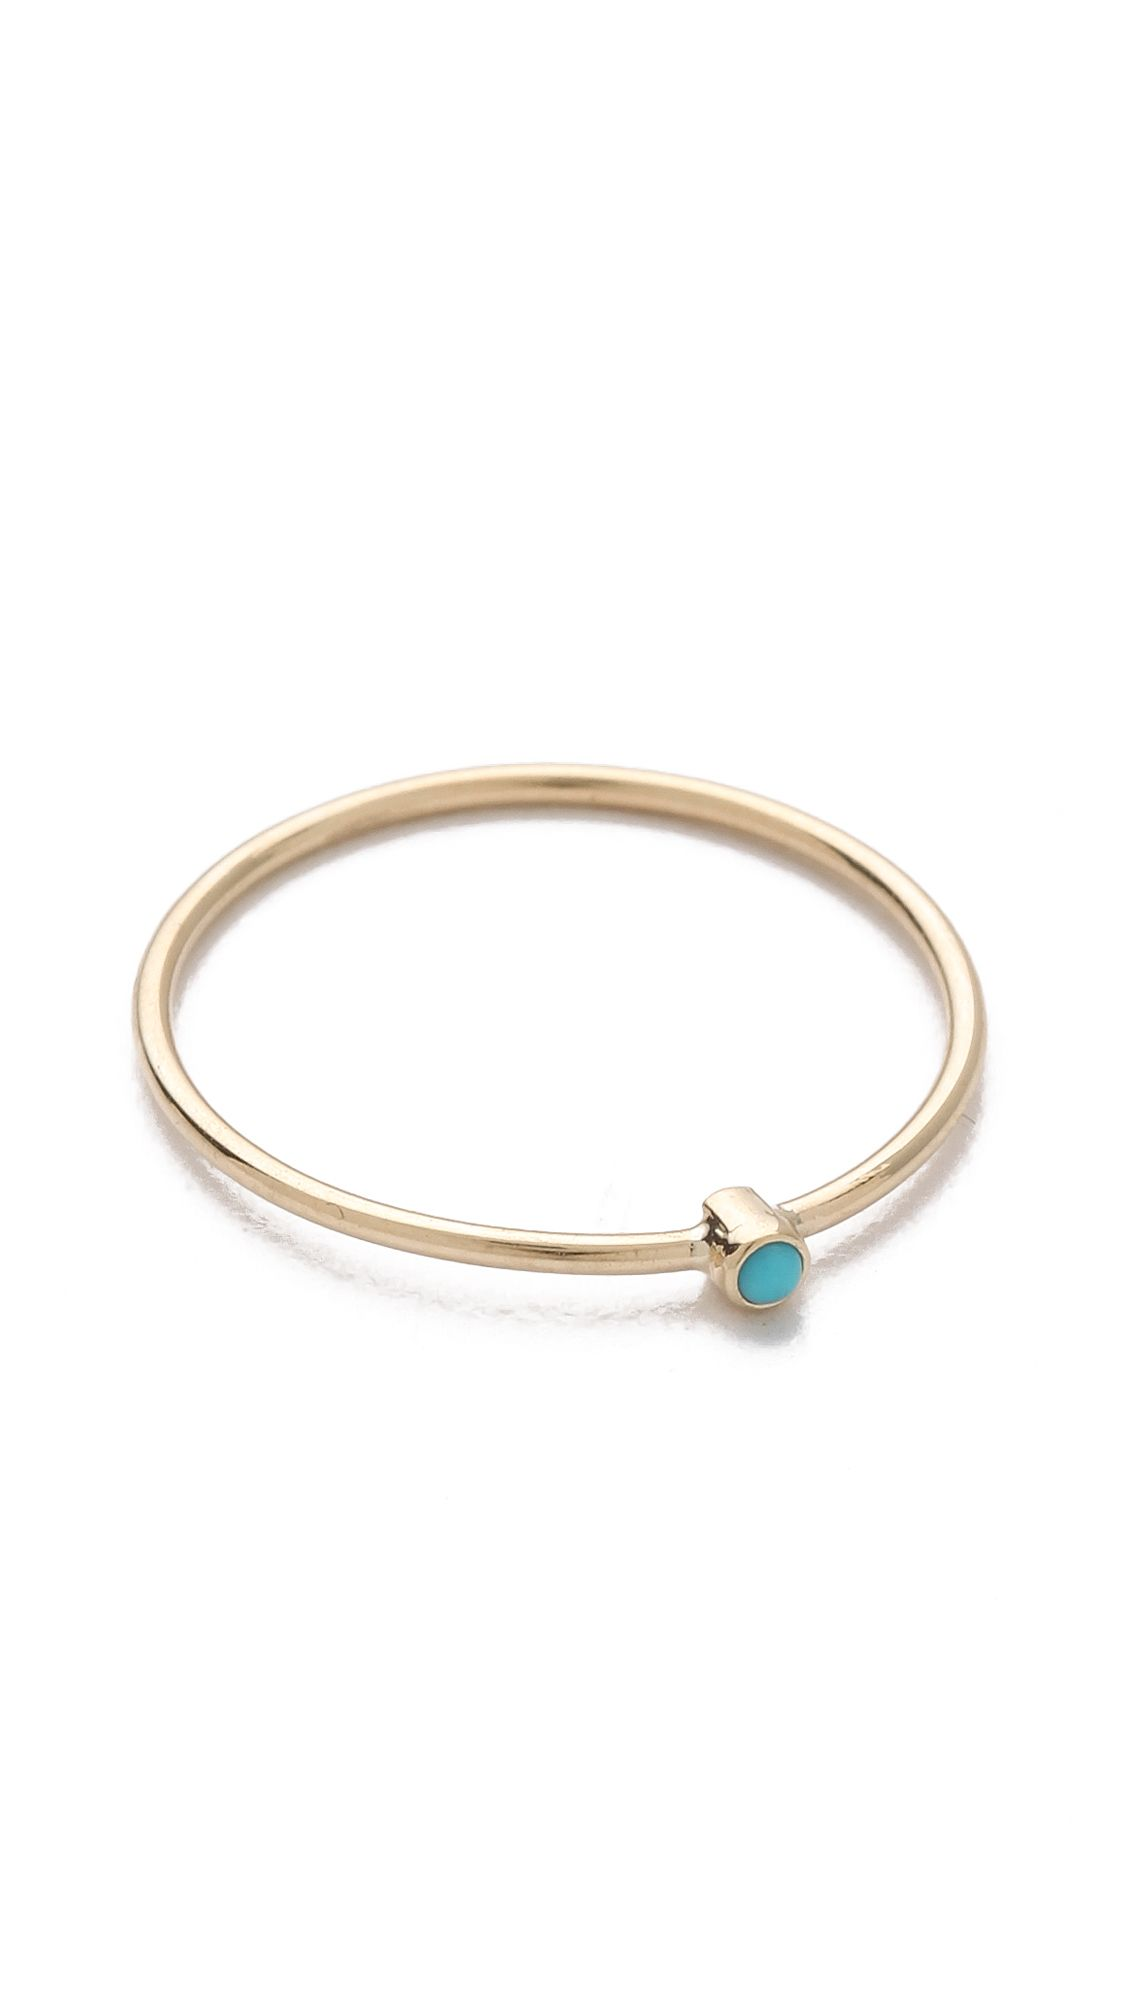 K gold thin ring with turquoise turquoise and ring